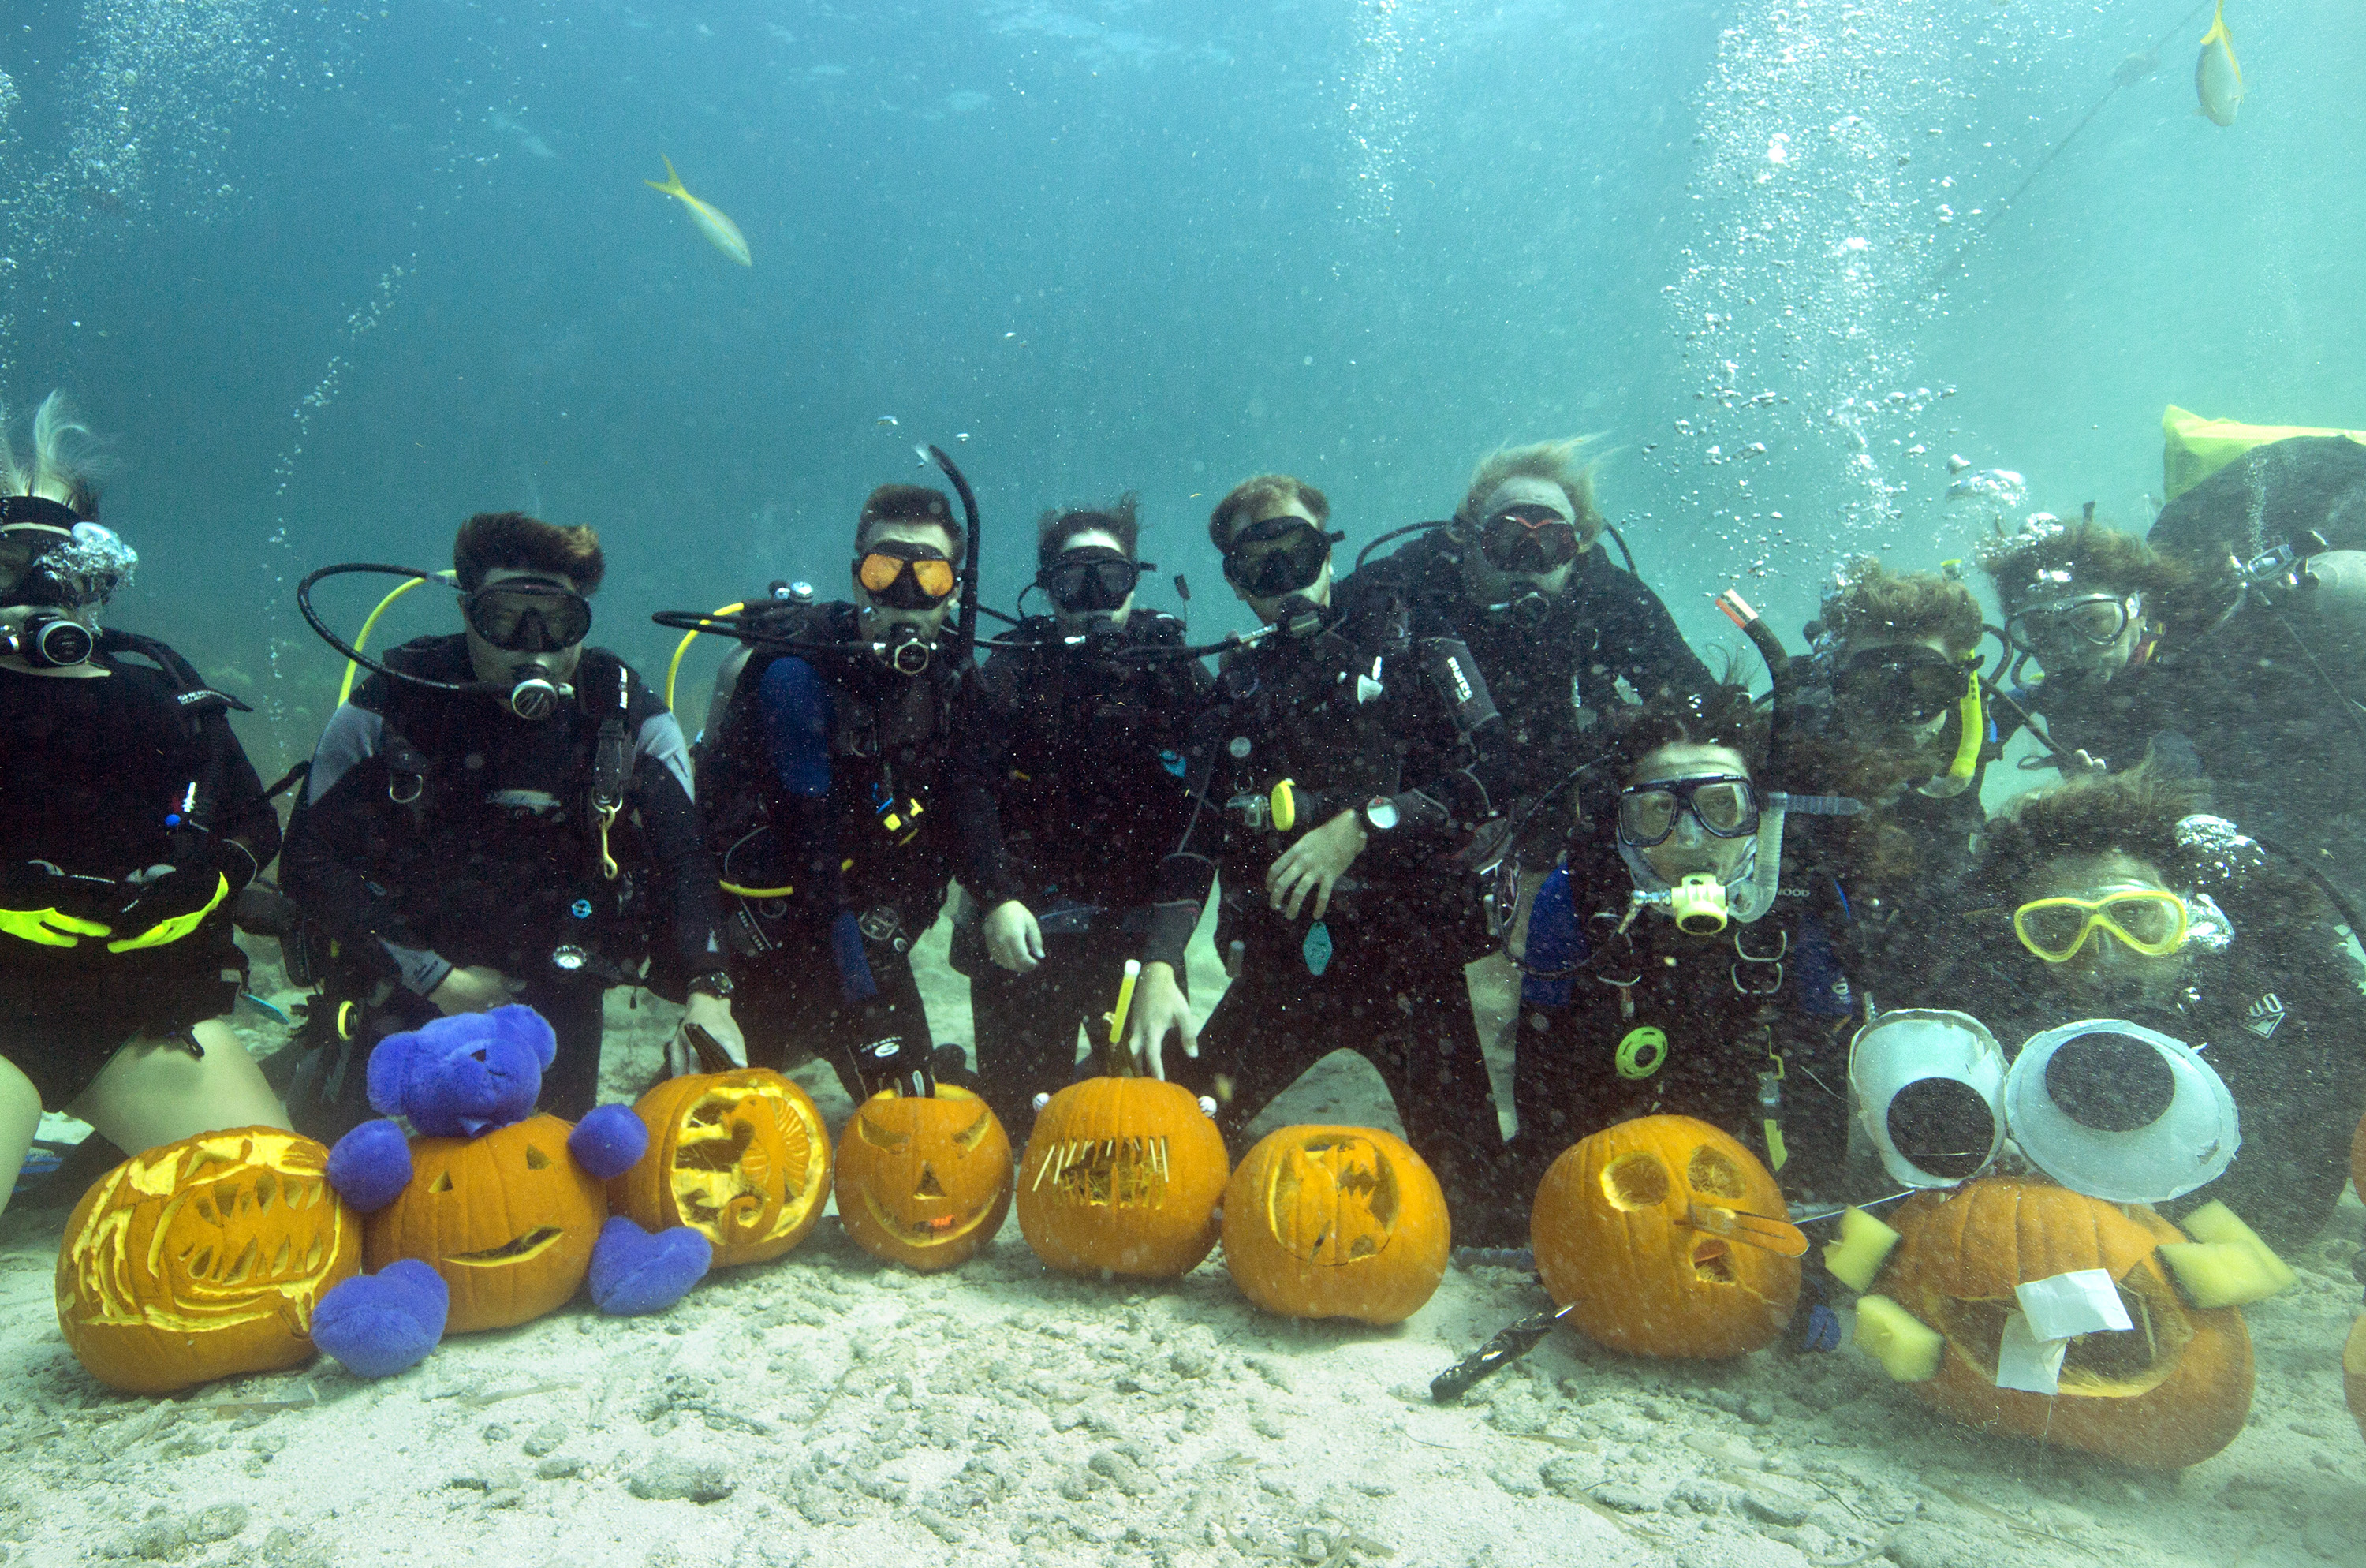 Keys Pumpking under water carving event